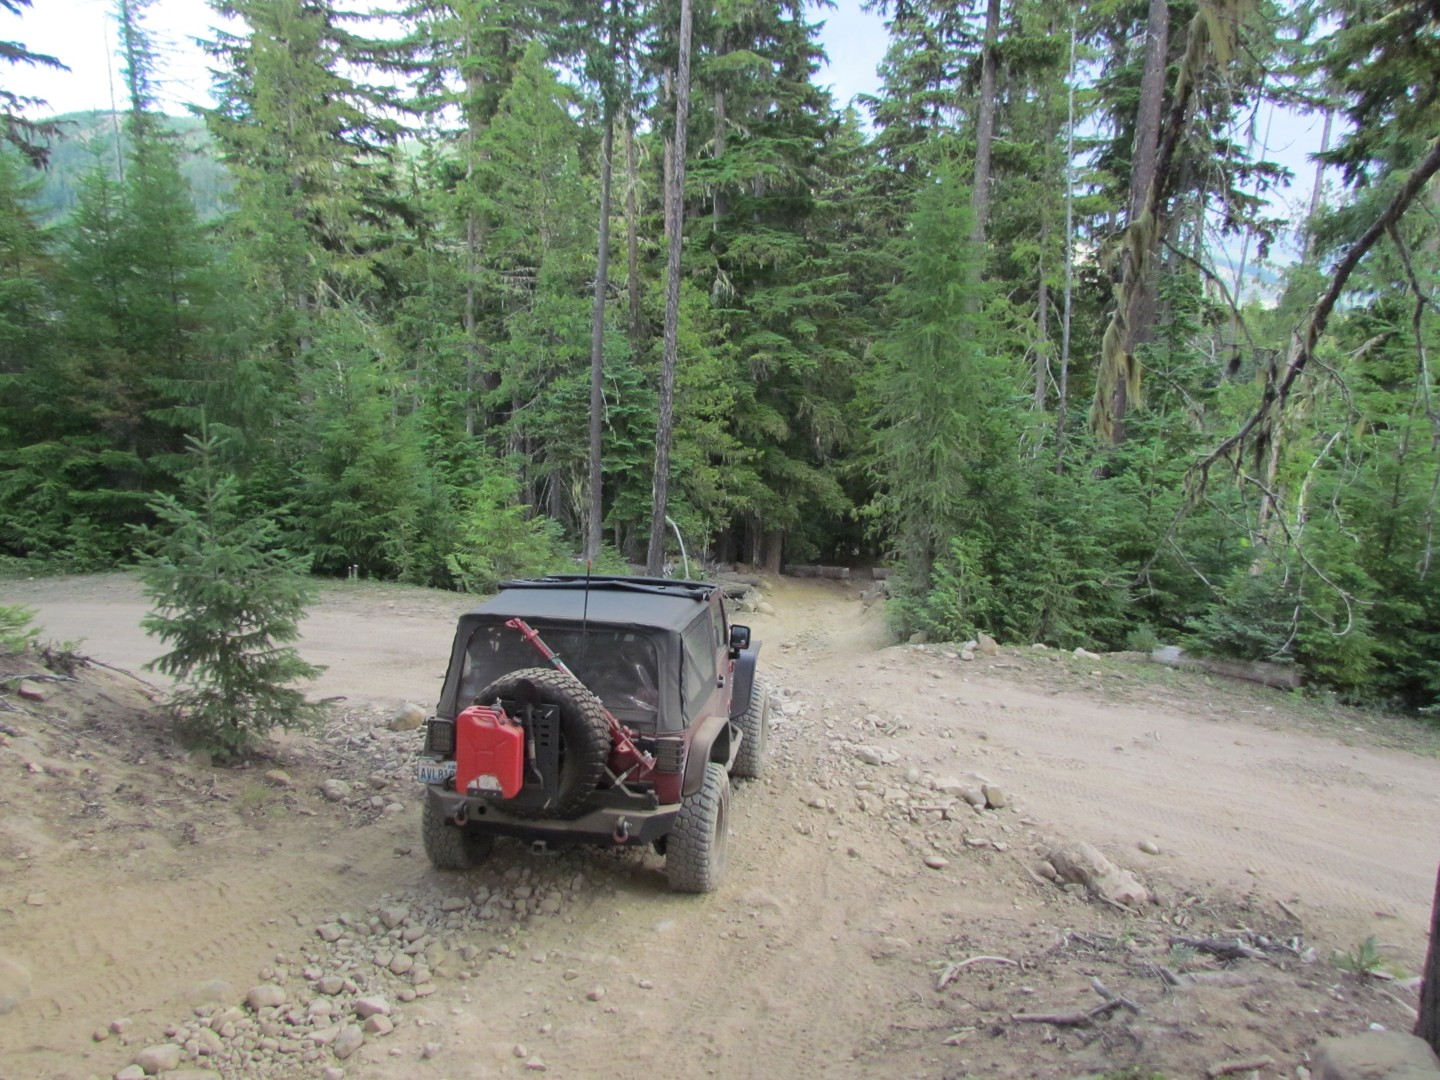 Naches Trail - Waypoint 18: Trail intersection